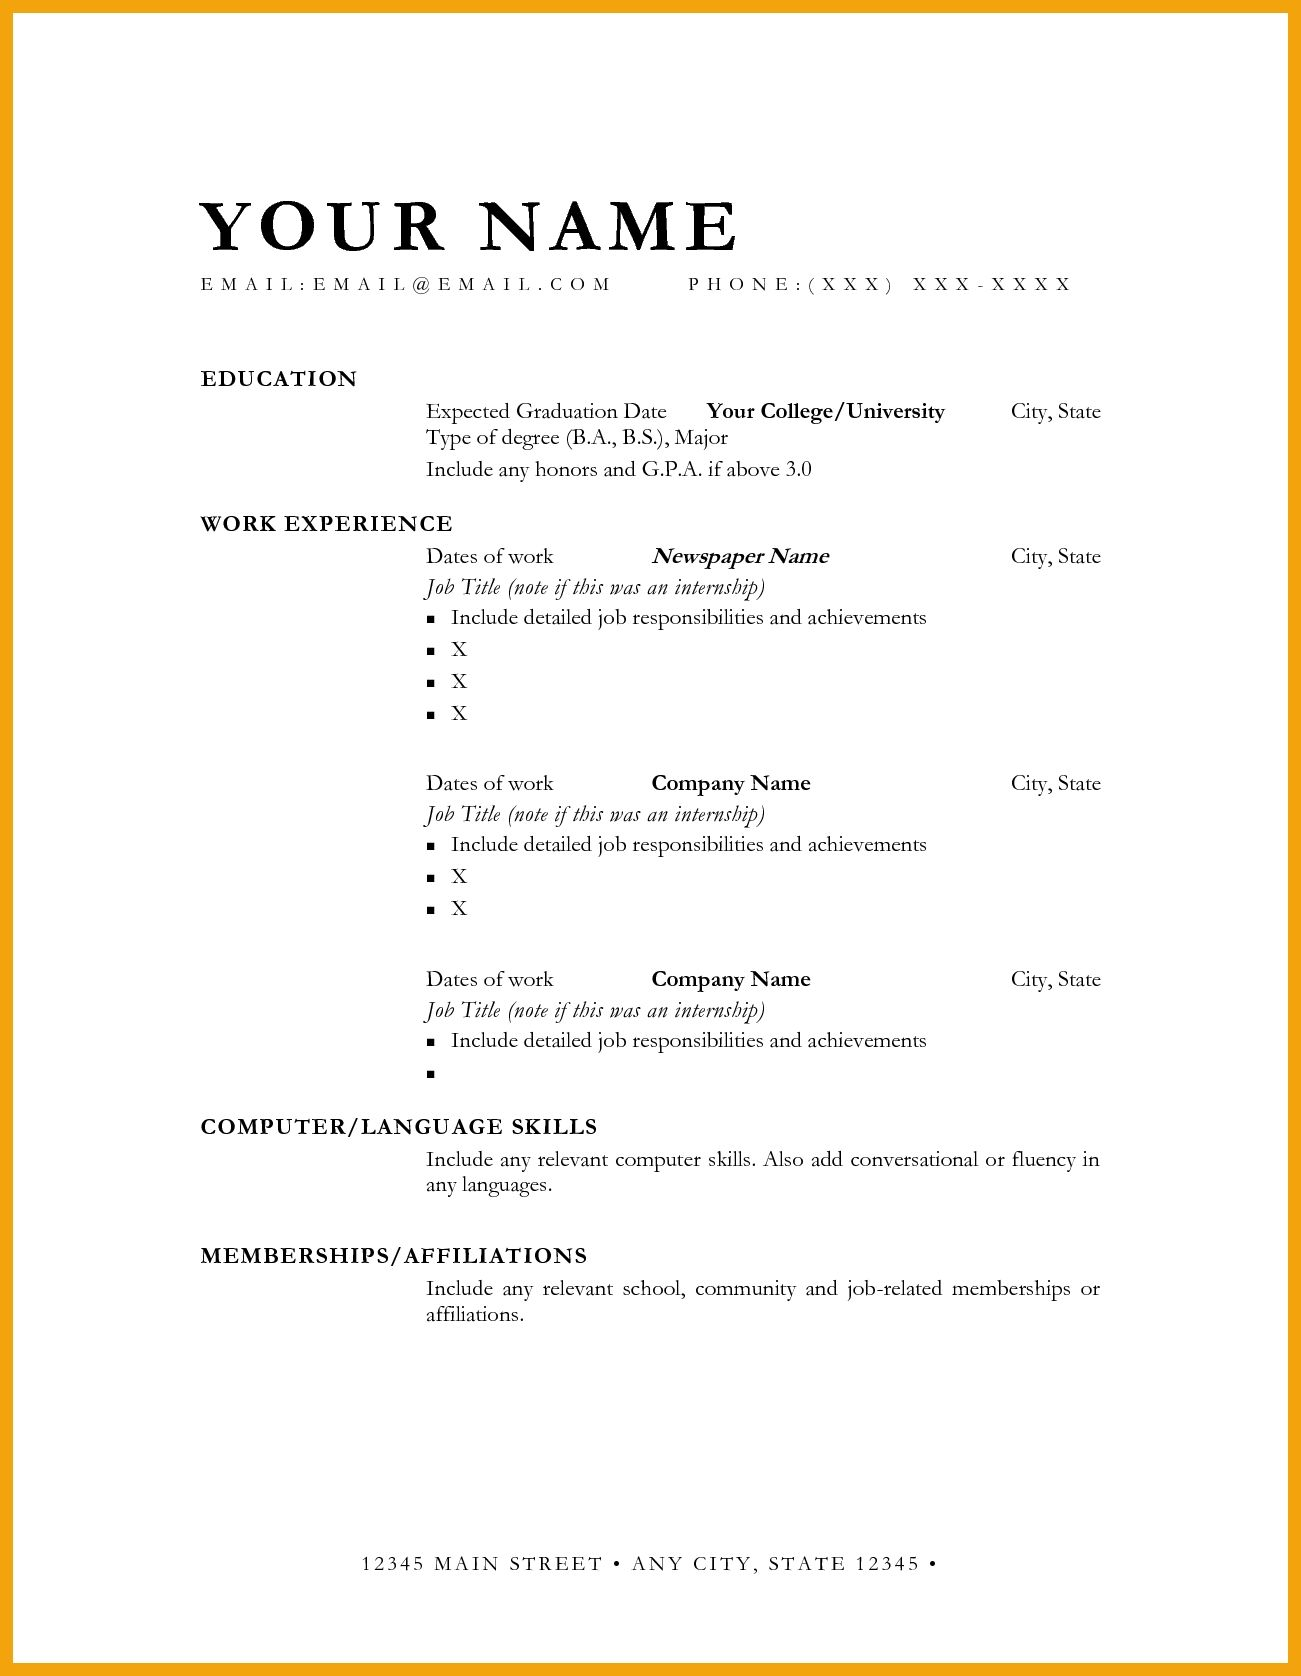 Graduation Date Outline Format Sample Expected Resume Manager Best